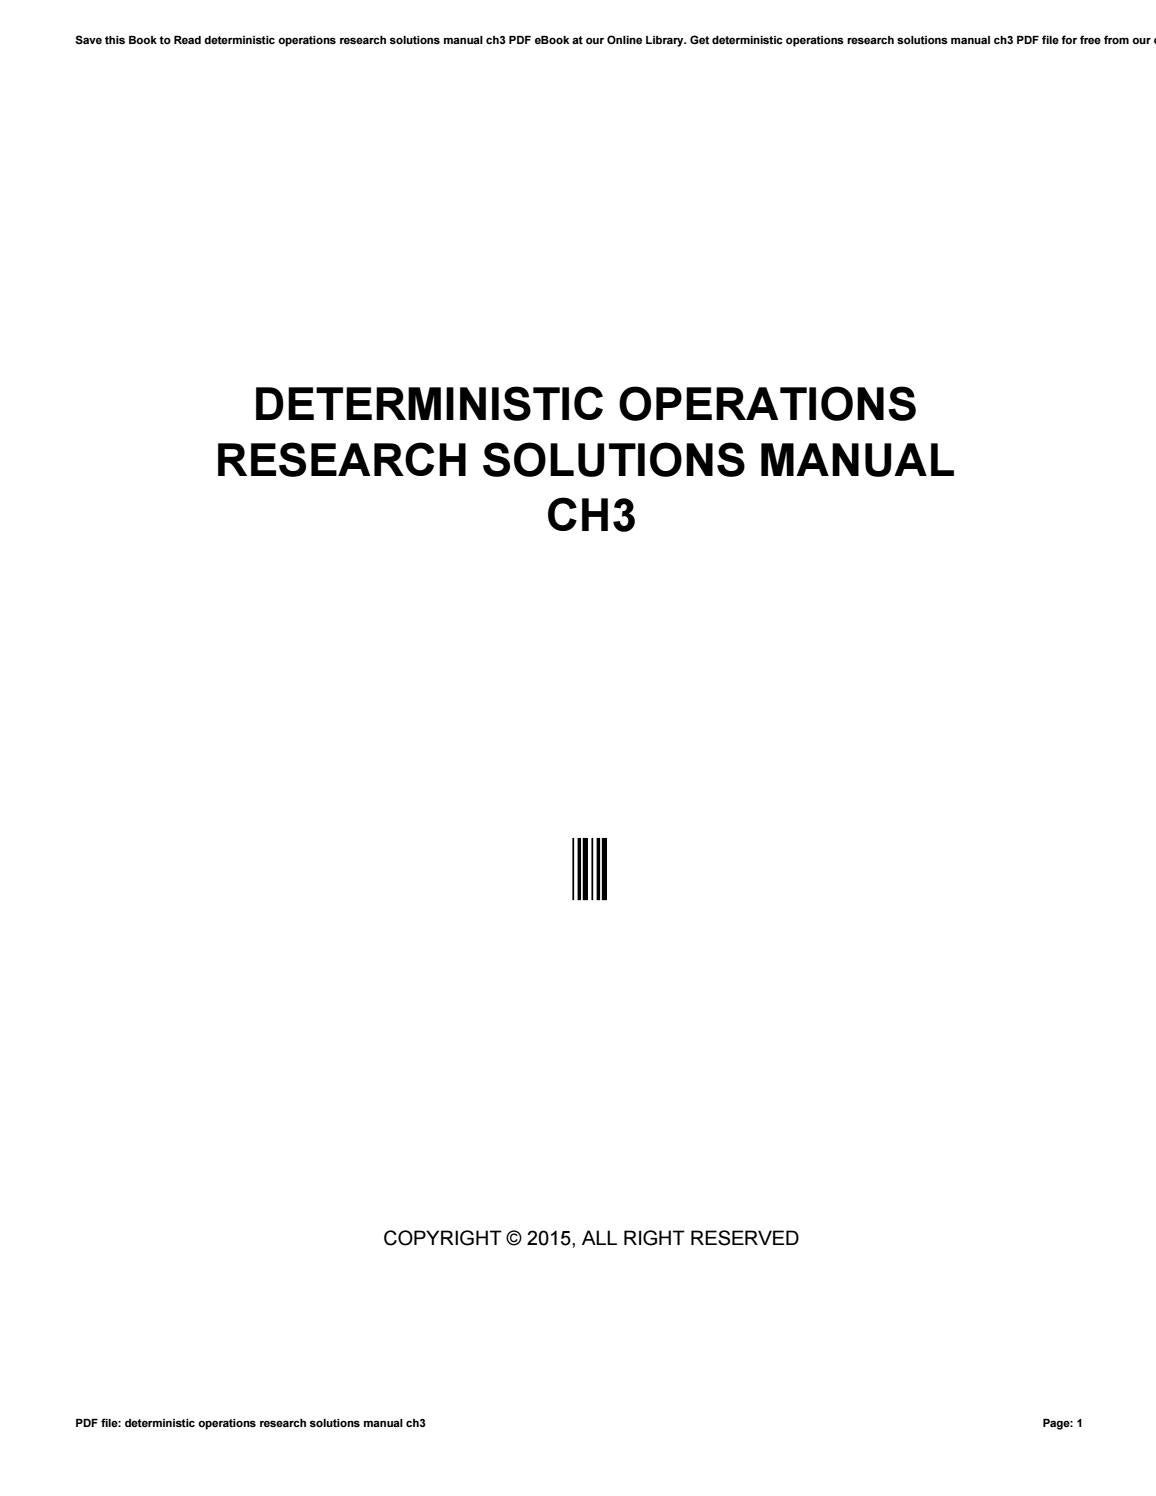 deterministic operations research solutions manual ch3 by rh issuu com Operations Manual Template for Word Clip Art Operations Manual